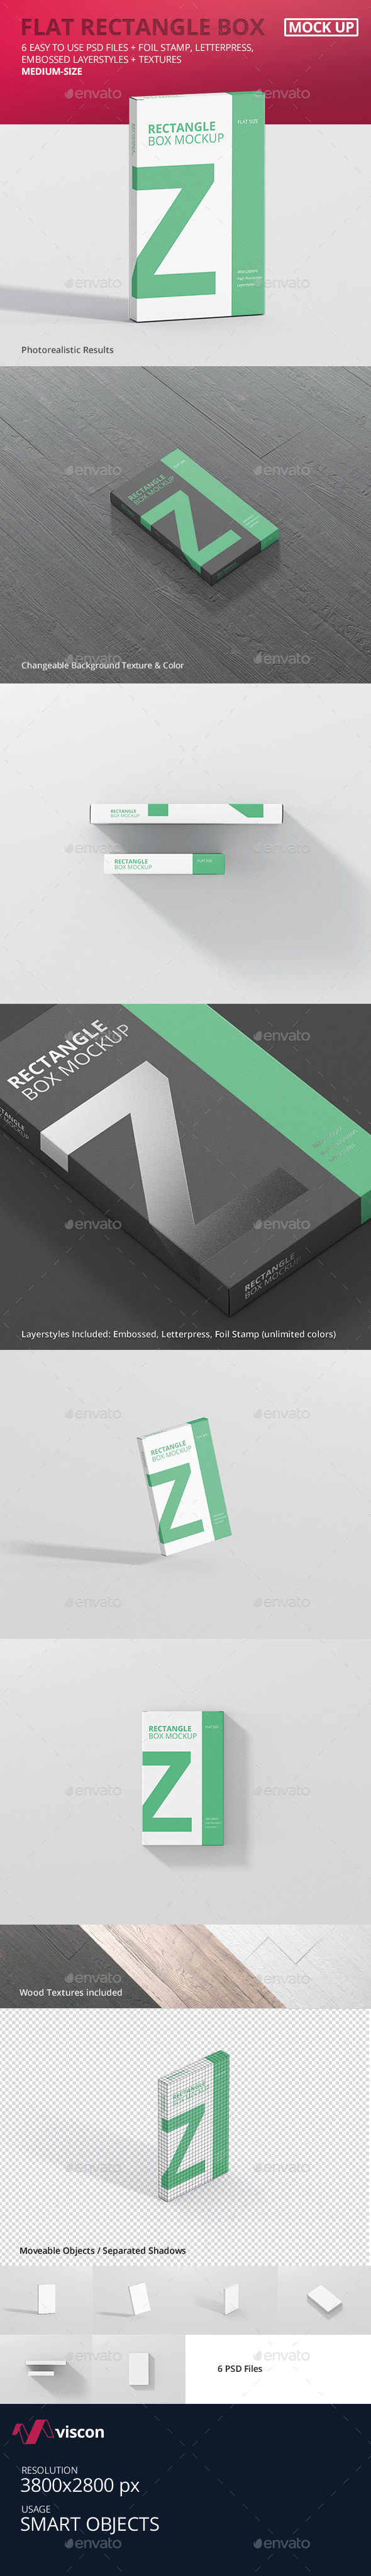 Box Mockup - Medium Size Flat Rectangle - Miscellaneous Packaging